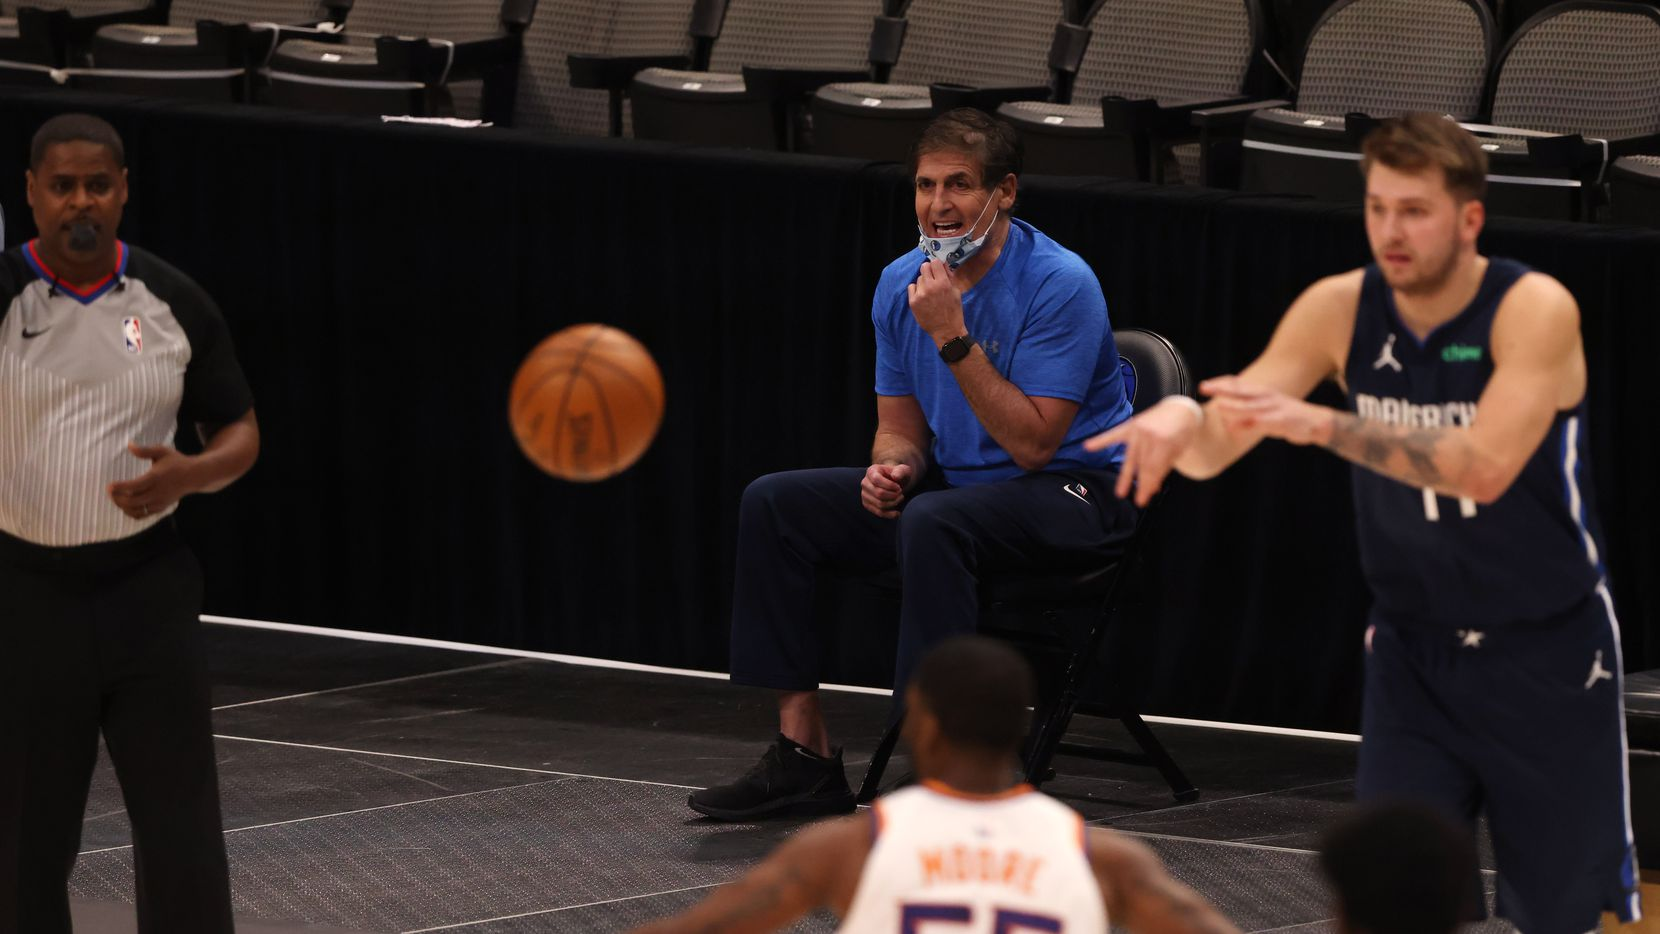 Dallas Mavericks owner Mark Cuban talks from the sideline in a game against the Phoenix Suns during the first quarter of play at American Airlines Center on Monday, February 1, 2021in Dallas. (Vernon Bryant/The Dallas Morning News)